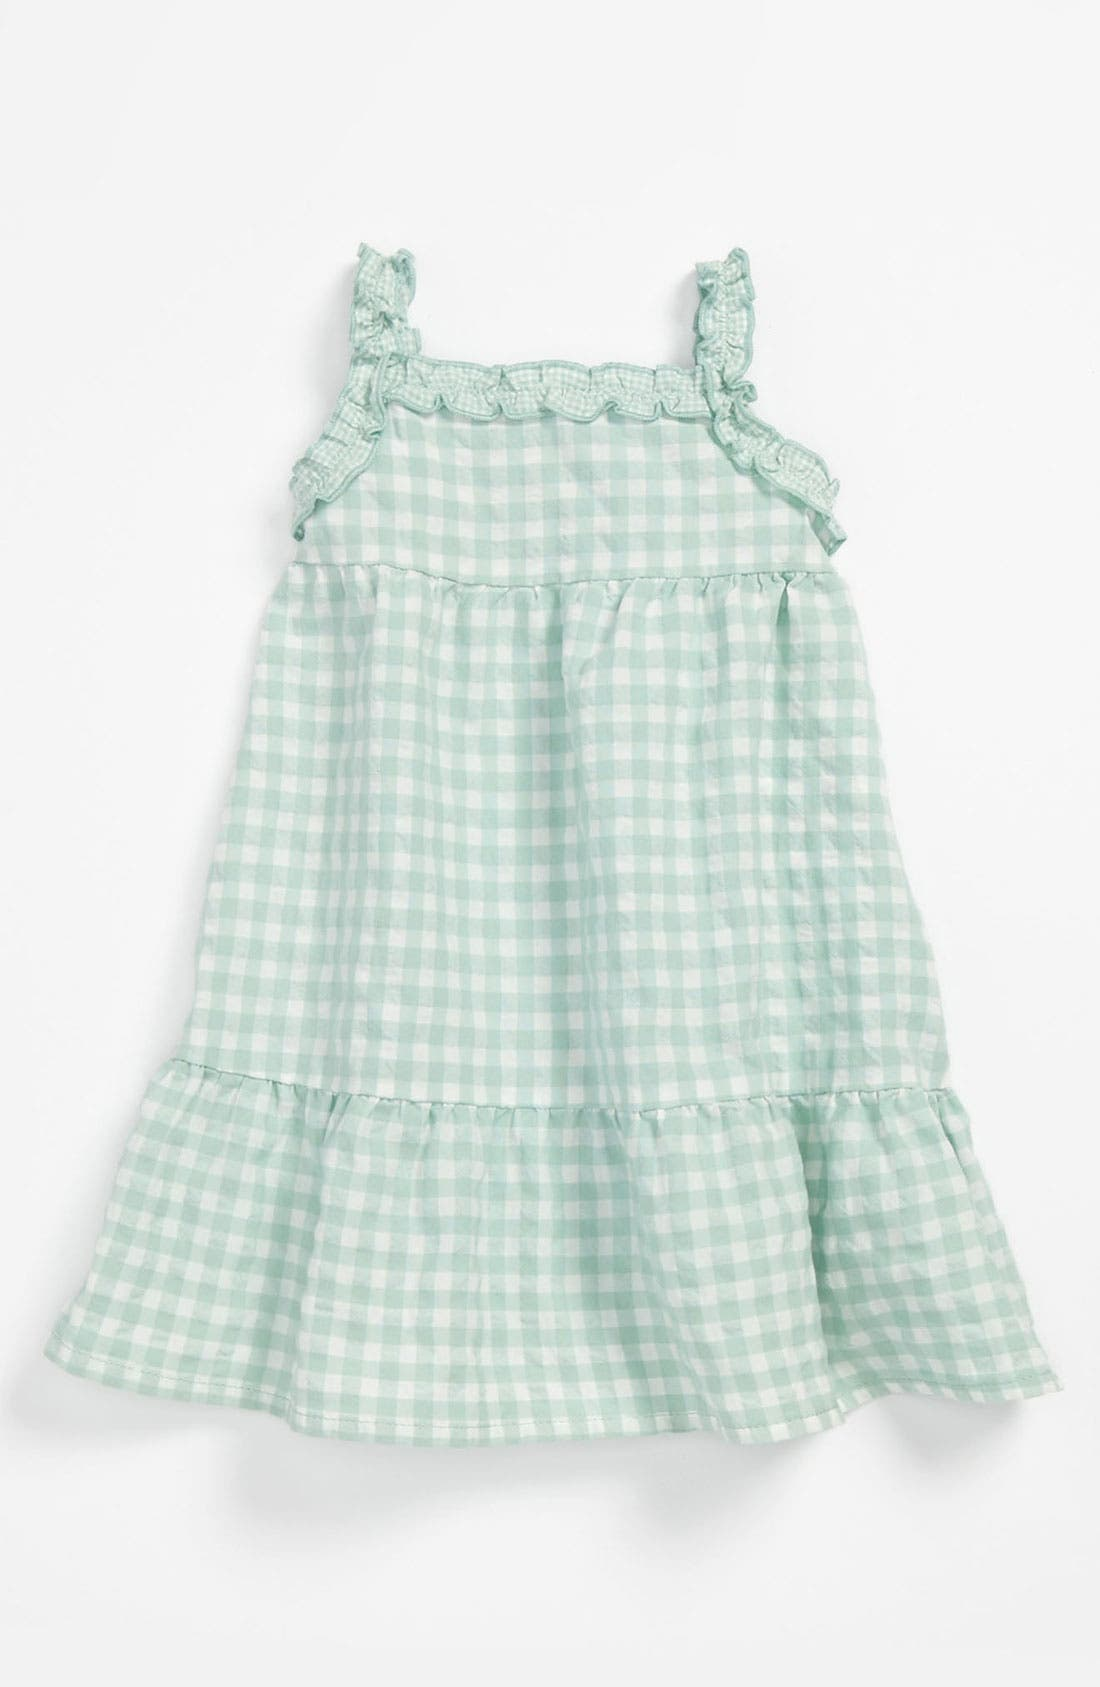 Alternate Image 1 Selected - United Colors of Benetton Kids Gingham Dress (Infant)